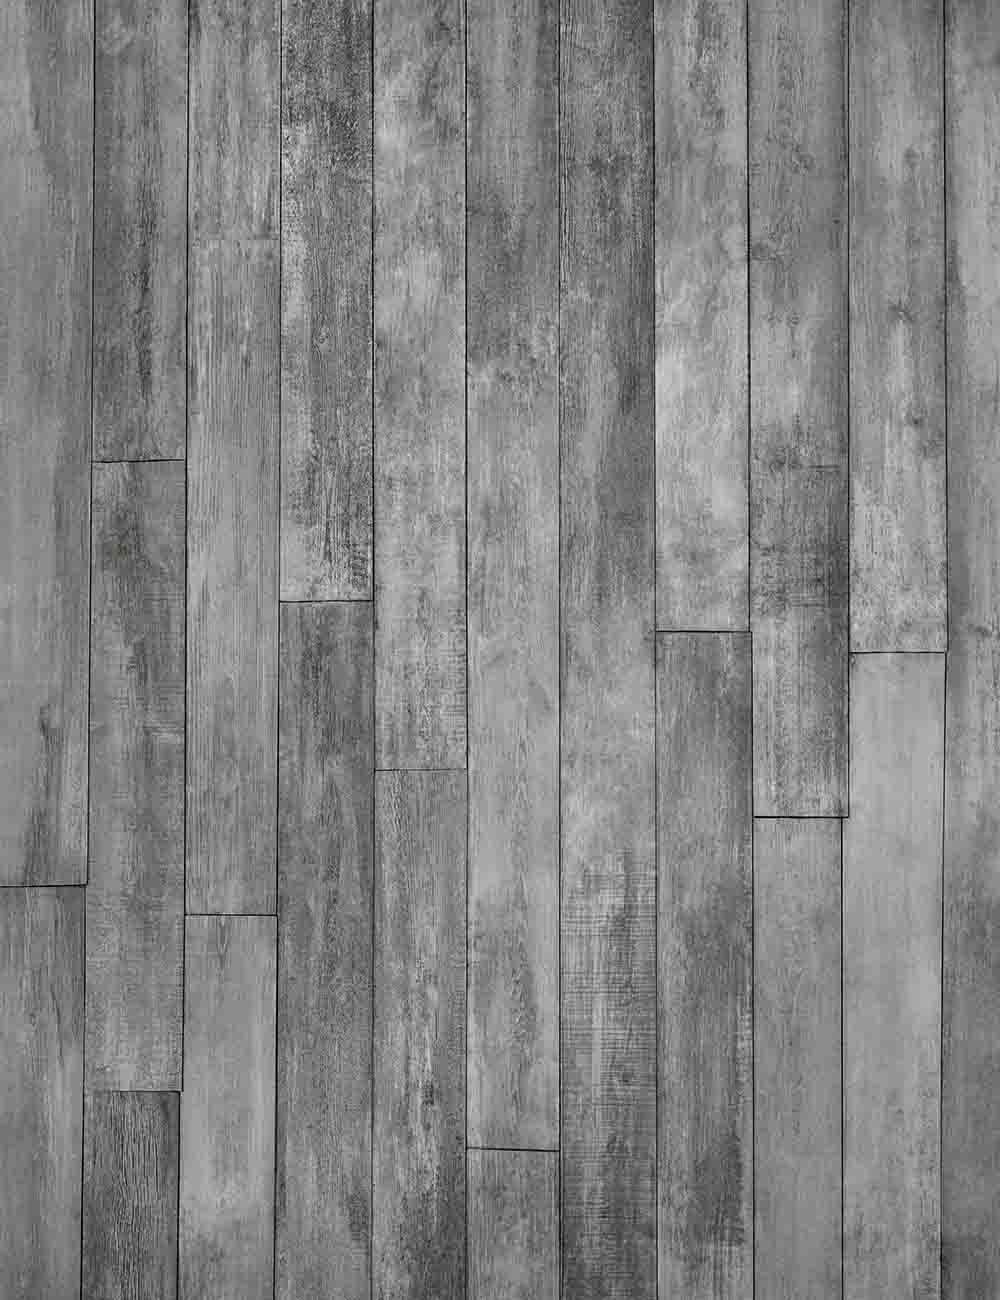 Slate Gray Wood Planks Floor Mats Texture Photography Backdrop Q-0590